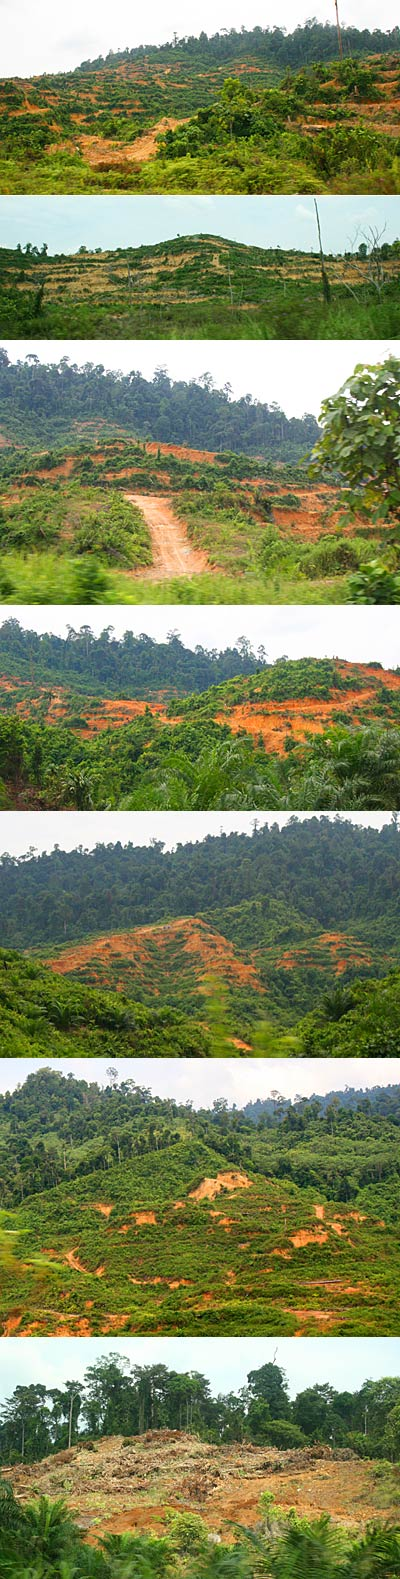 Hill clearing for Oil Palm plantation